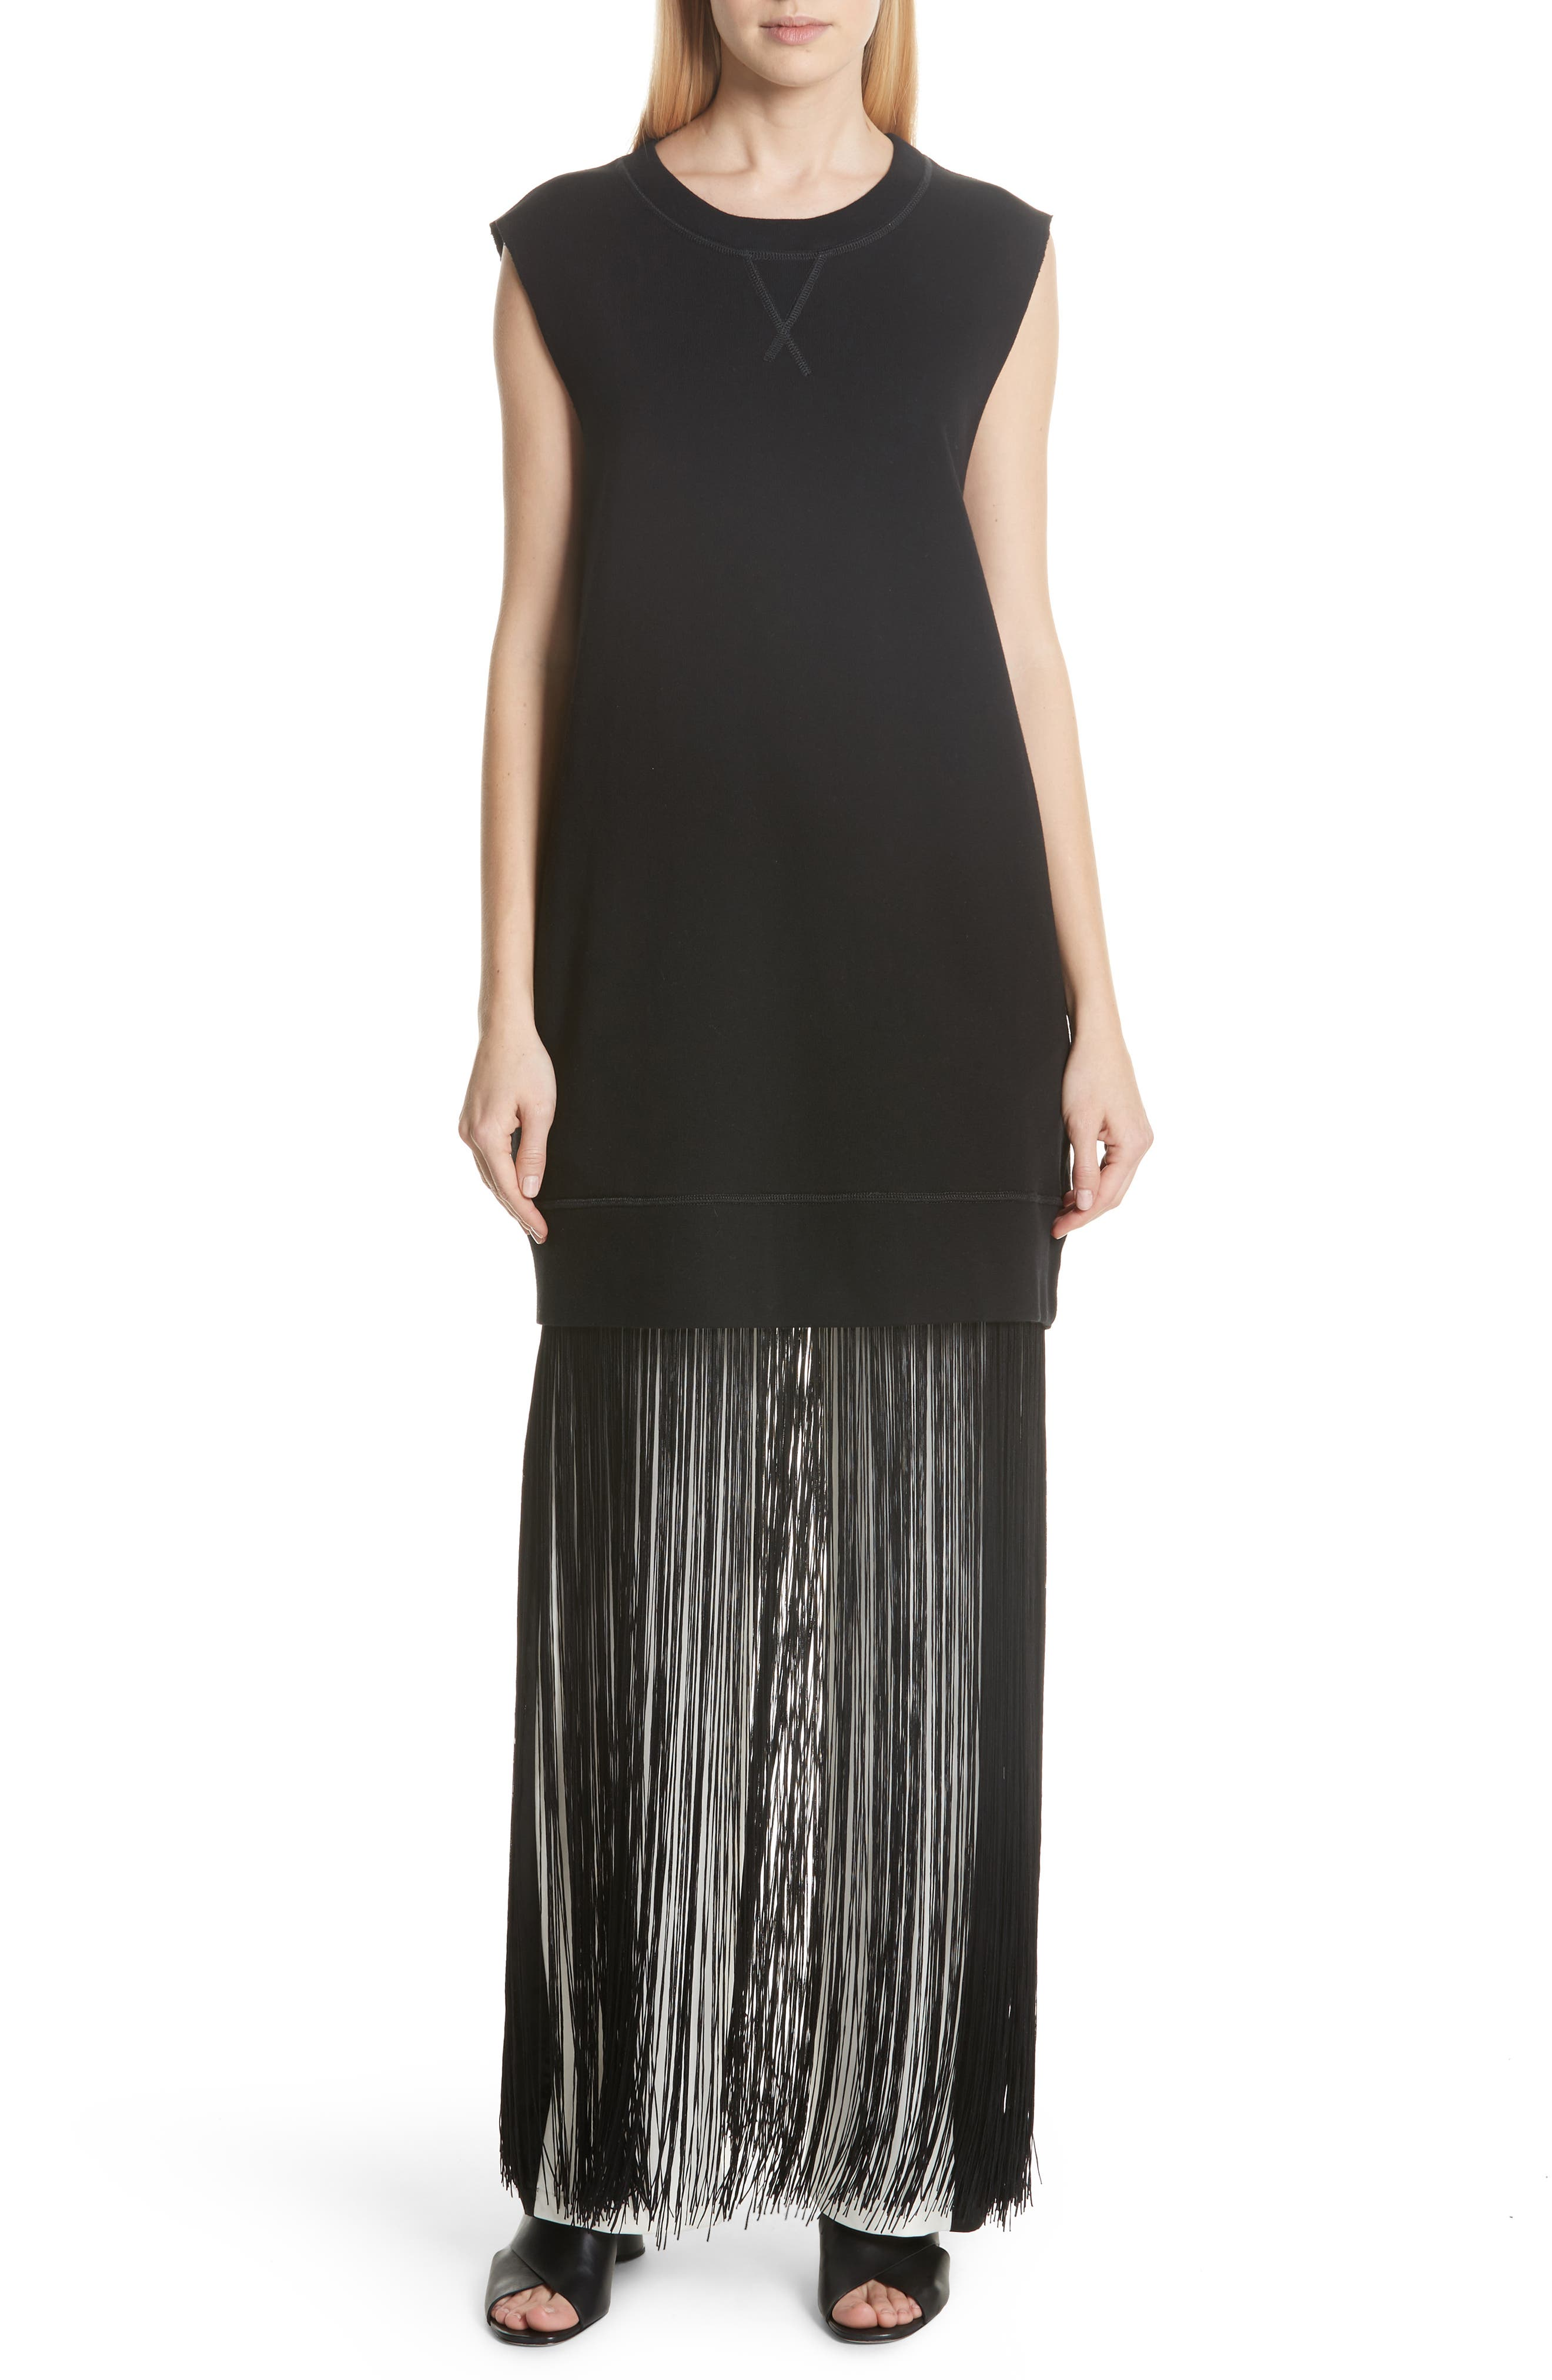 MM6 Maison Margiela Fringe Hem Sweatshirt Dress